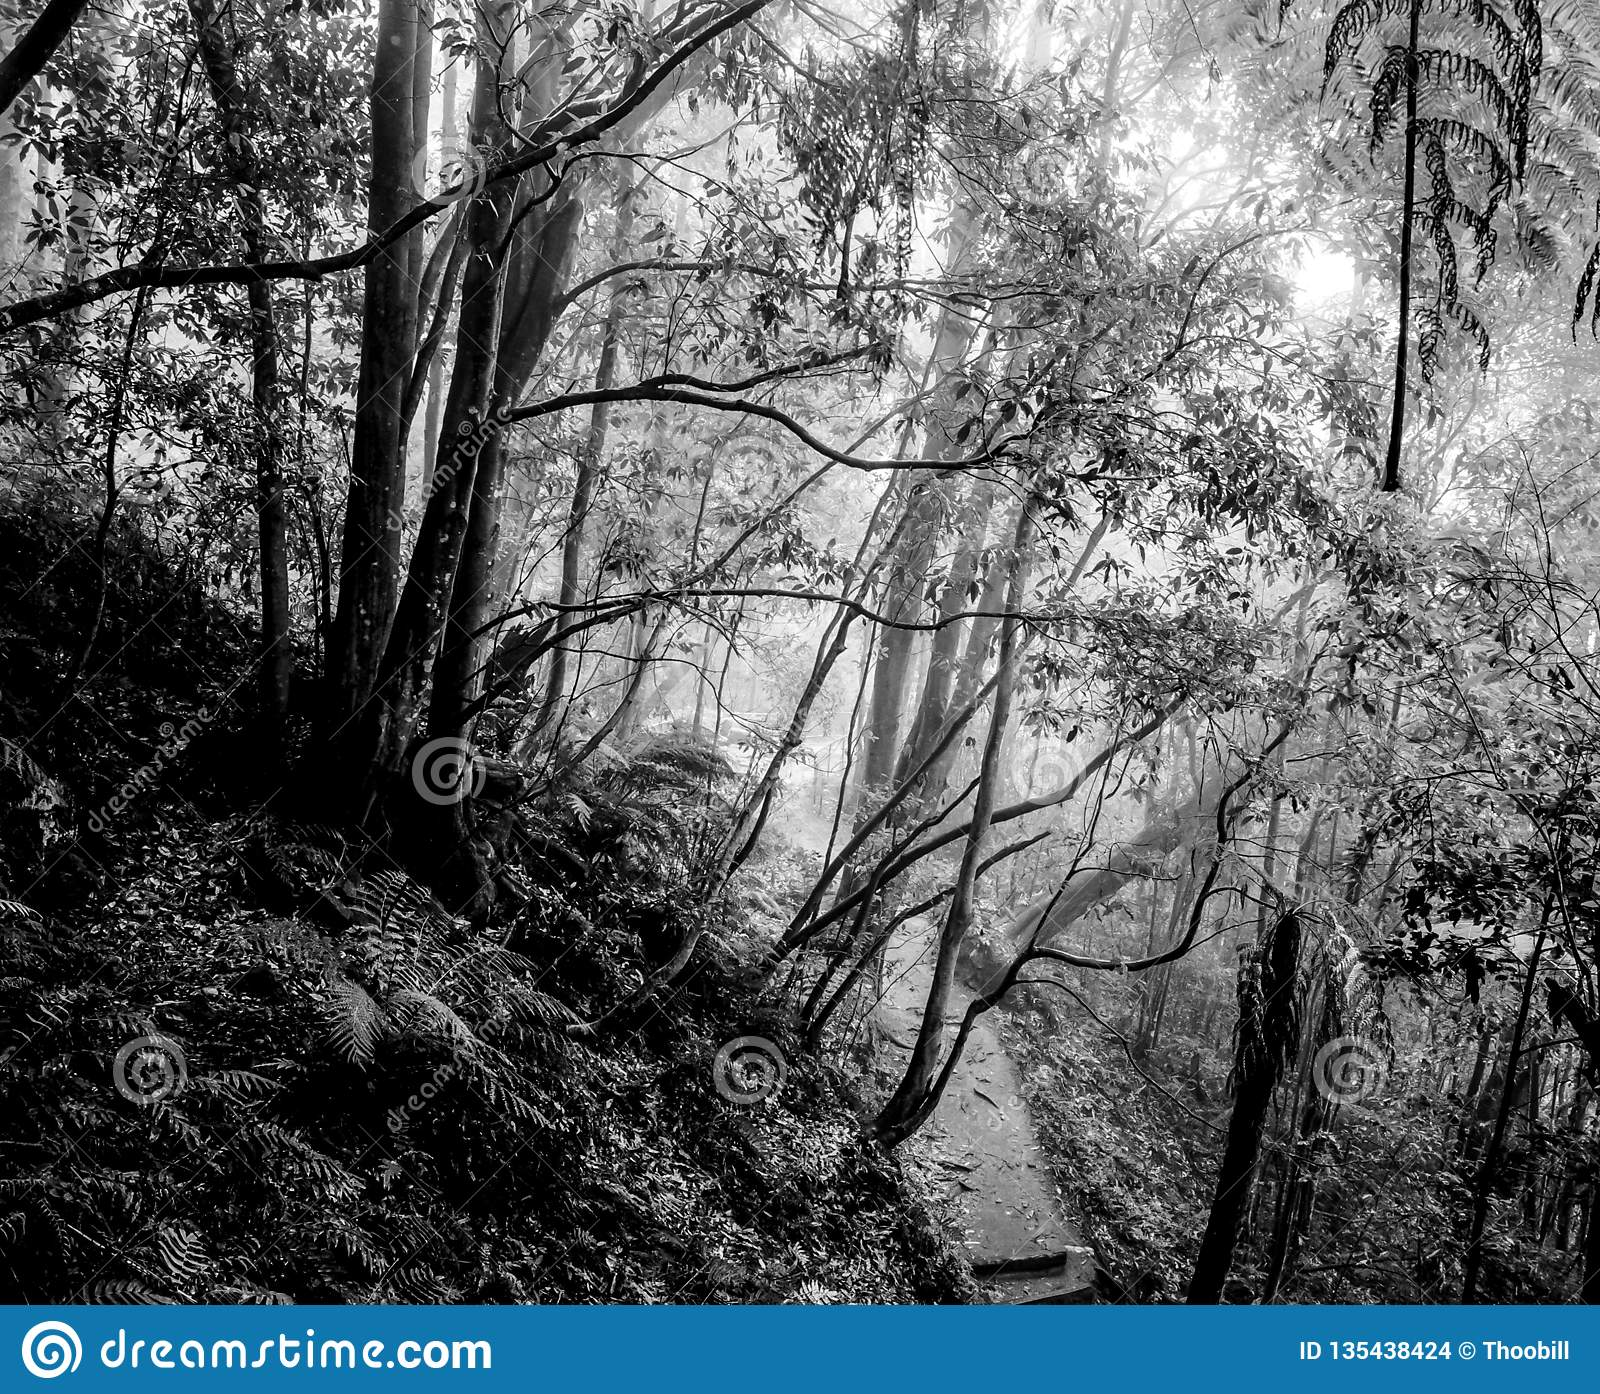 Misty rainy atmosphere Blue Mountains Katoomba National Park forest landscape day monochrome